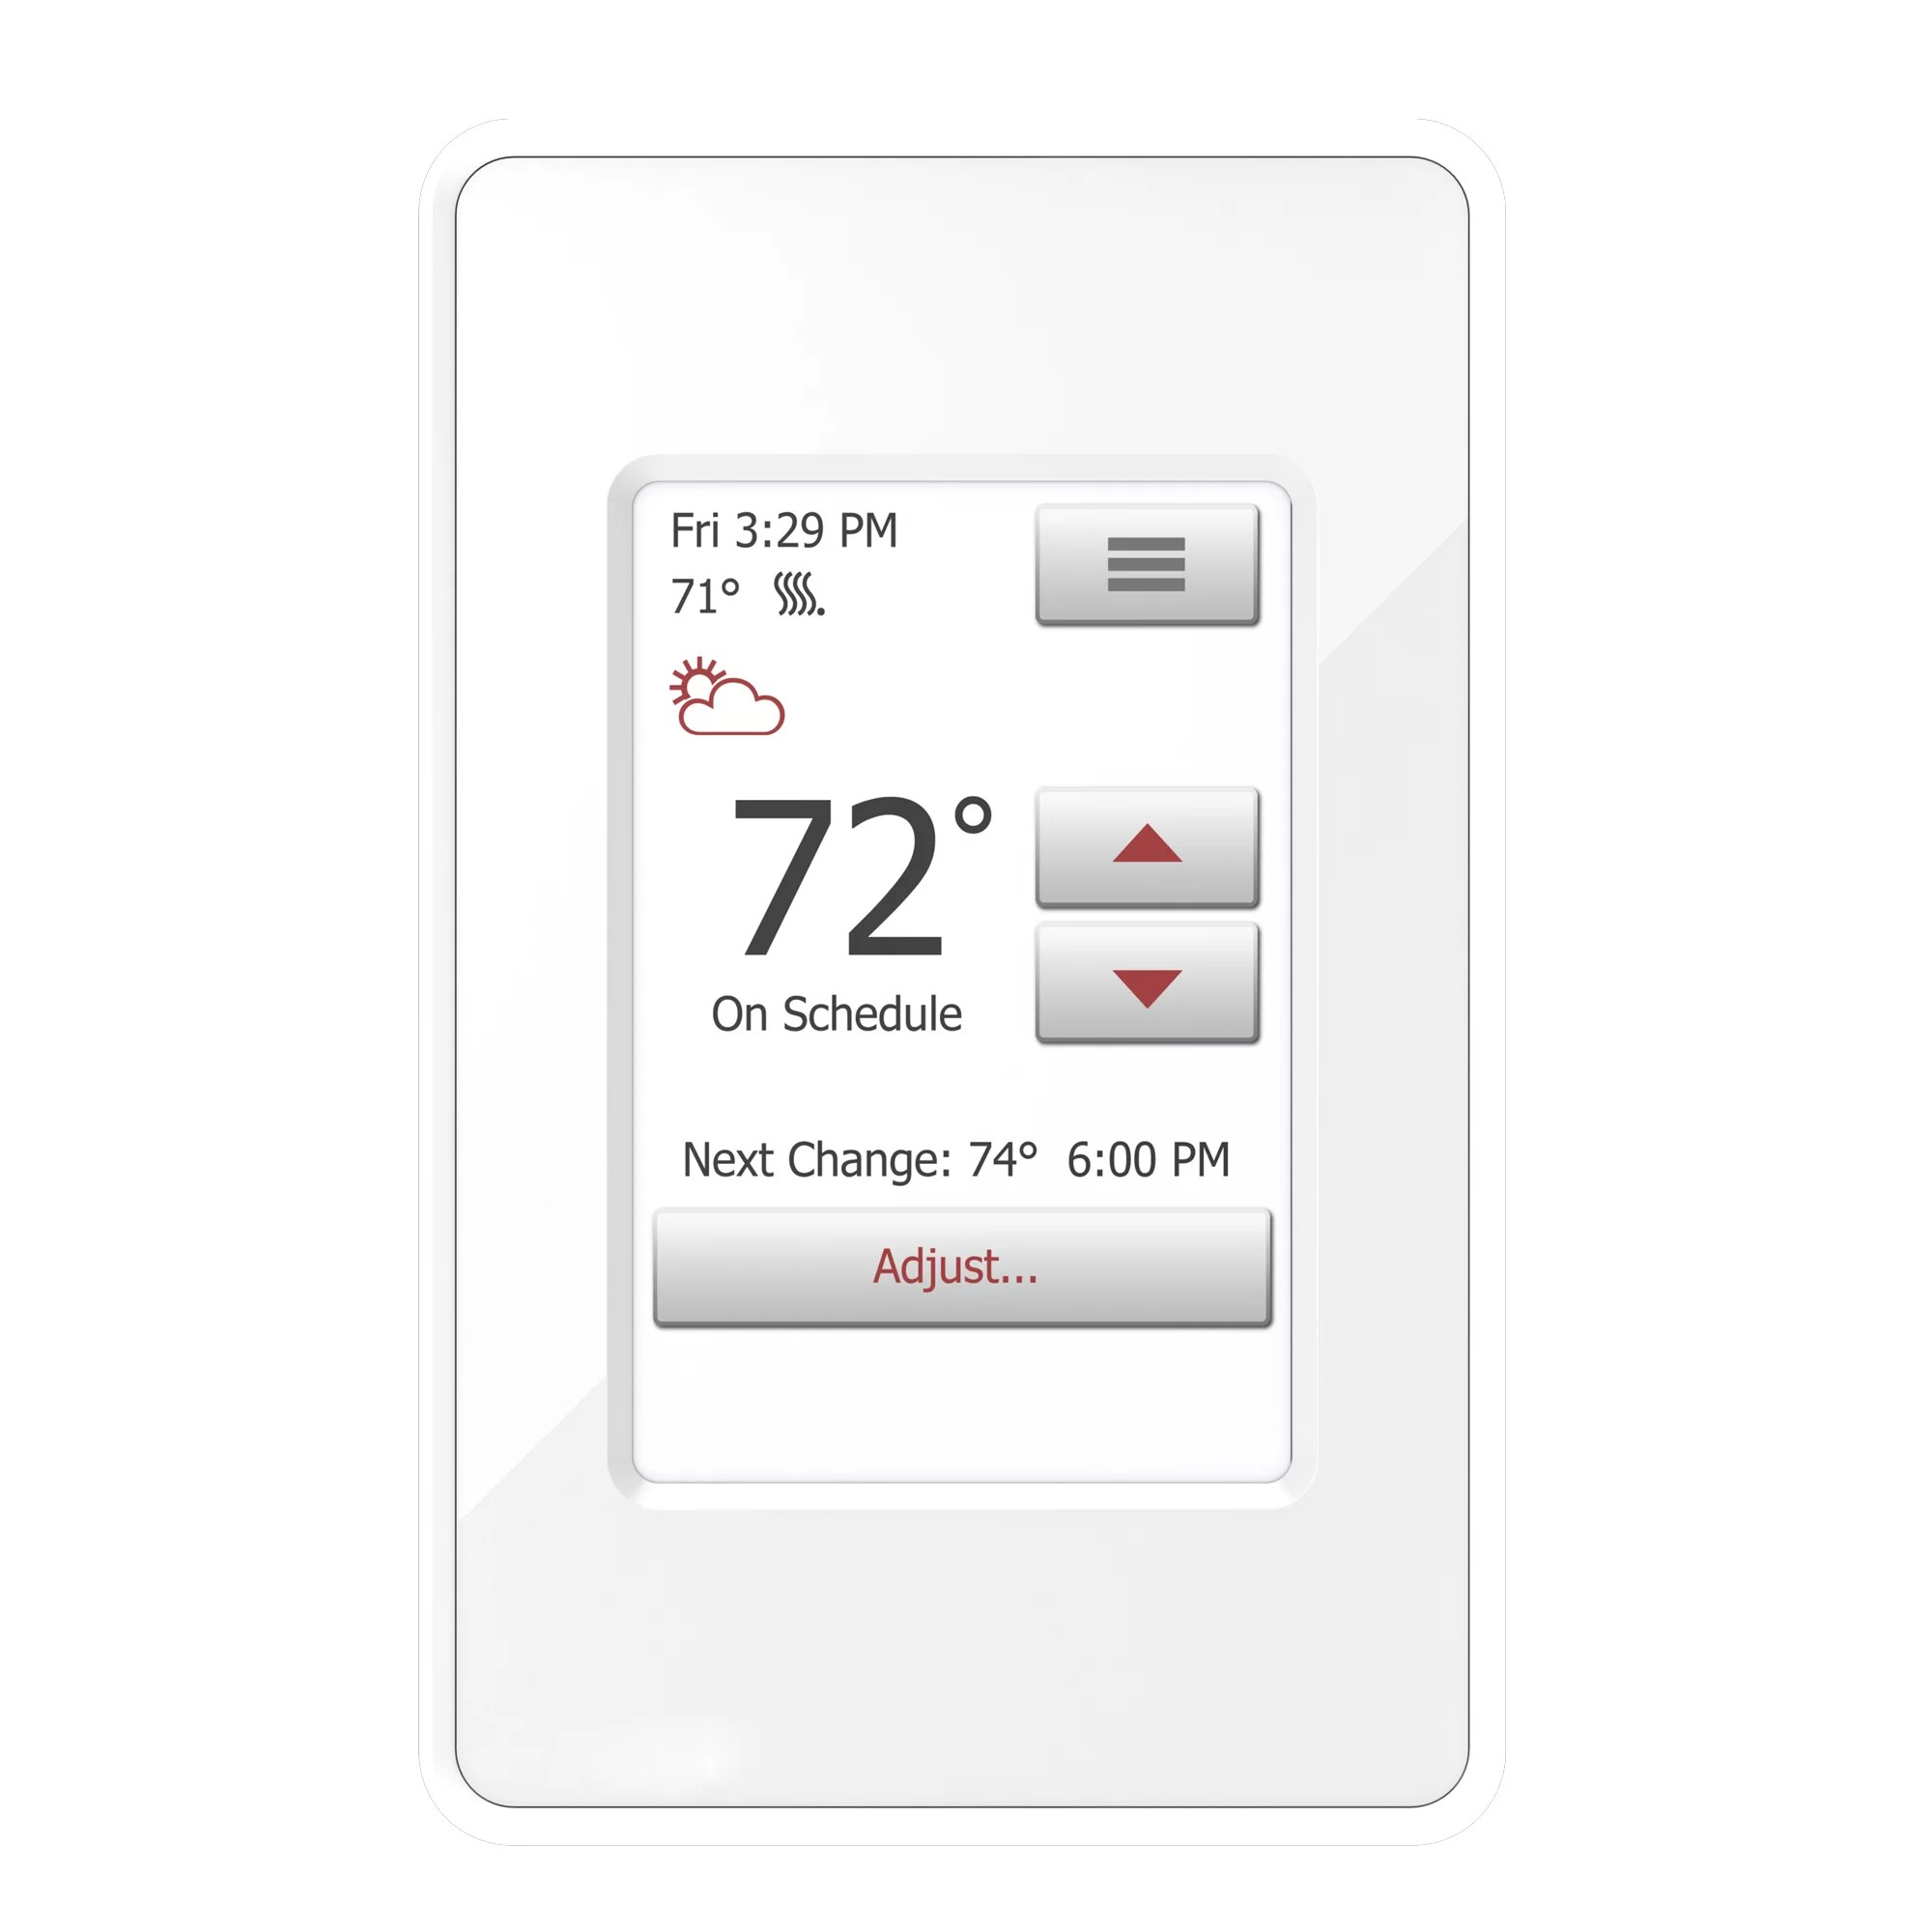 Heating Thermostat Floor Heating Kit With Flex Roll And Nspire Touch Programmable Thermostat